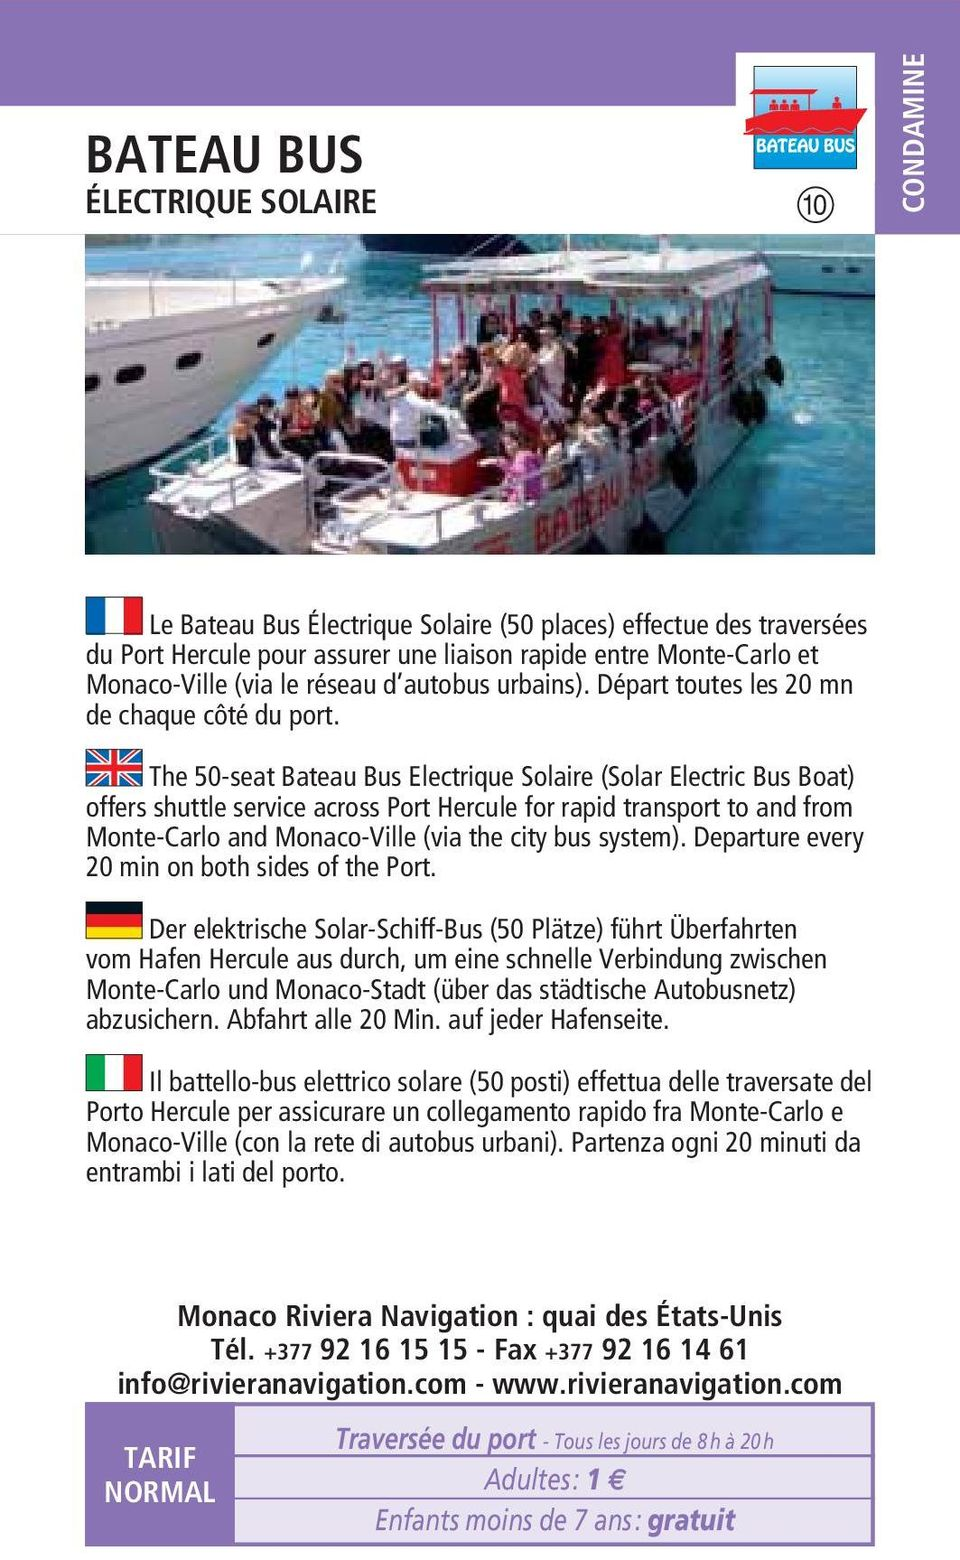 The 50-seat Bateau Bus Electrique Solaire (Solar Electric Bus Boat) offers shuttle service across Port Hercule for rapid transport to and from Monte-Carlo and Monaco-Ville (via the city bus system).